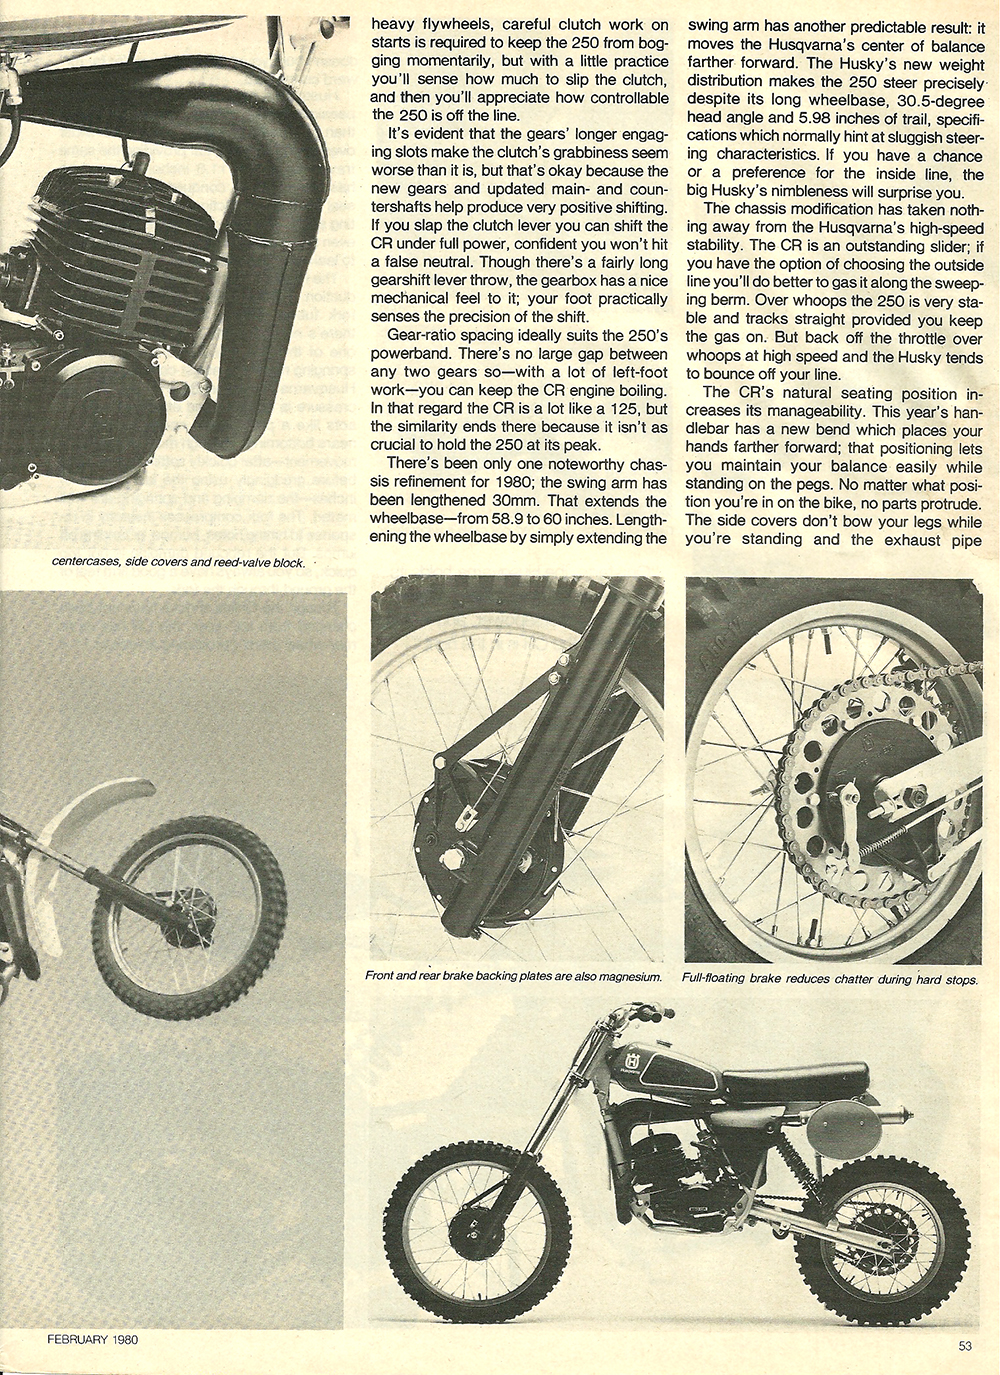 1980 Husqvarna 250 CR road test 4.jpg